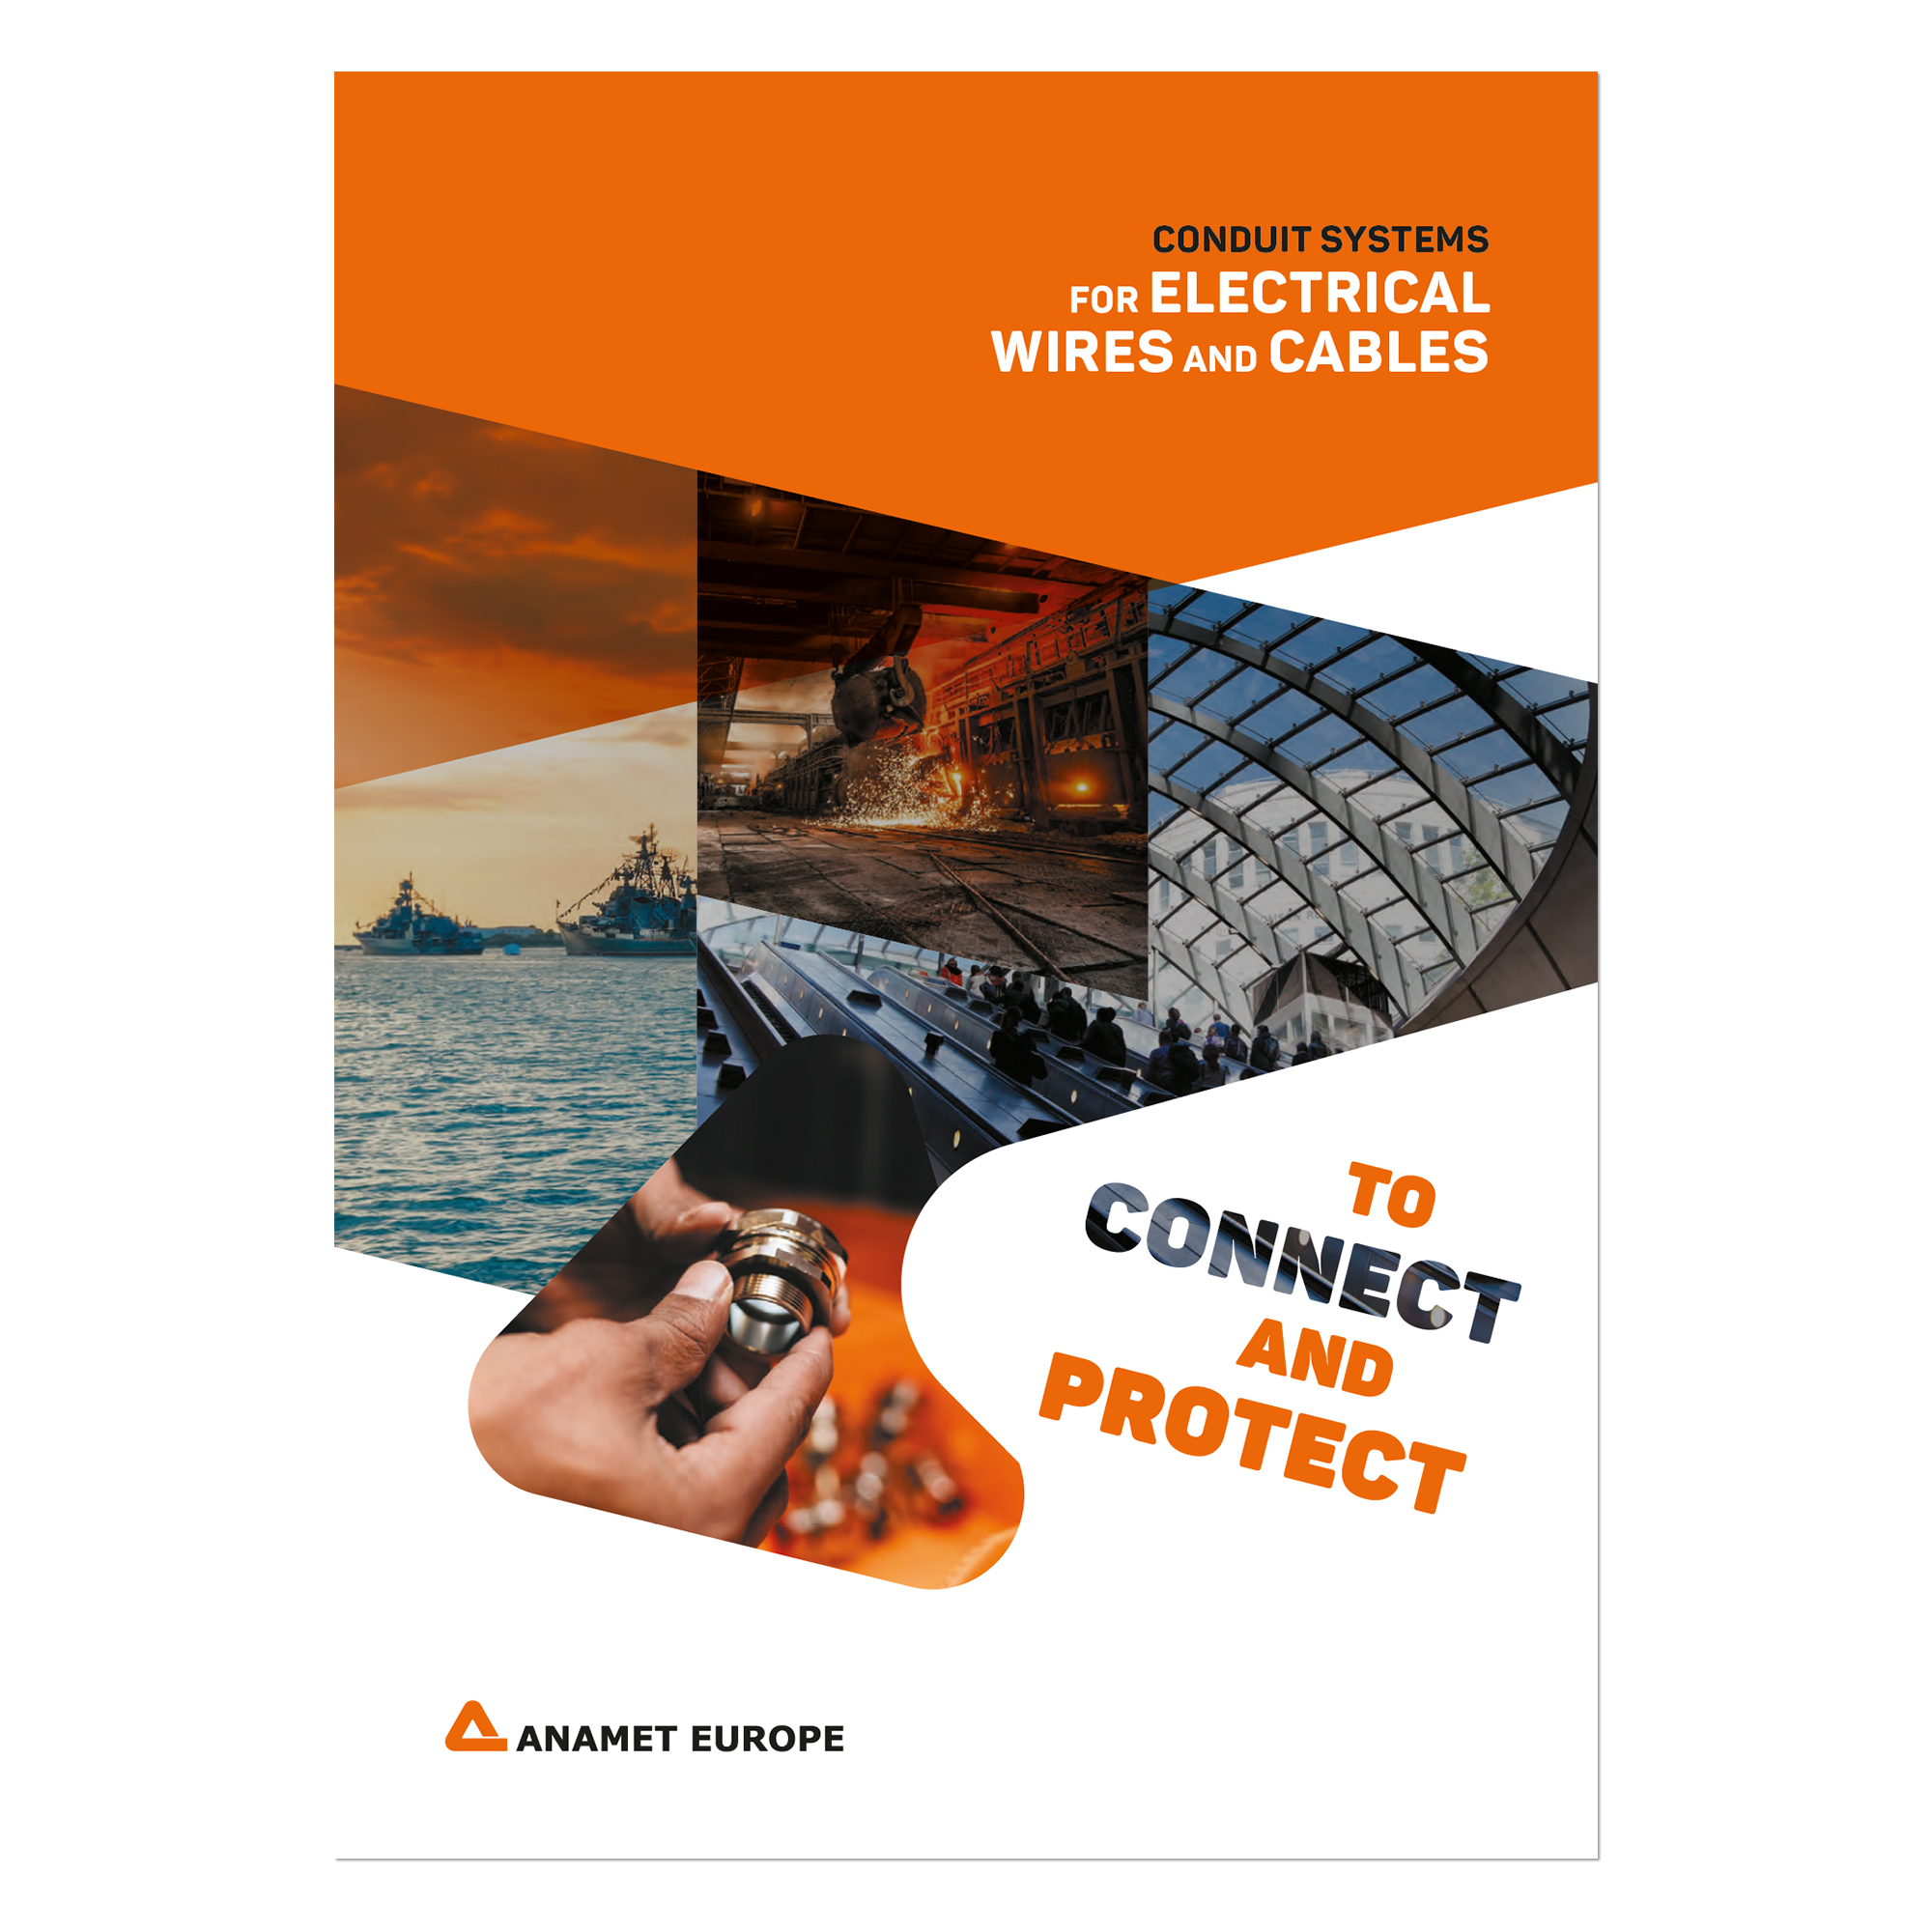 anamet_europe_conduit_systems_for_electrical_wires_and_cables_nortelco_as